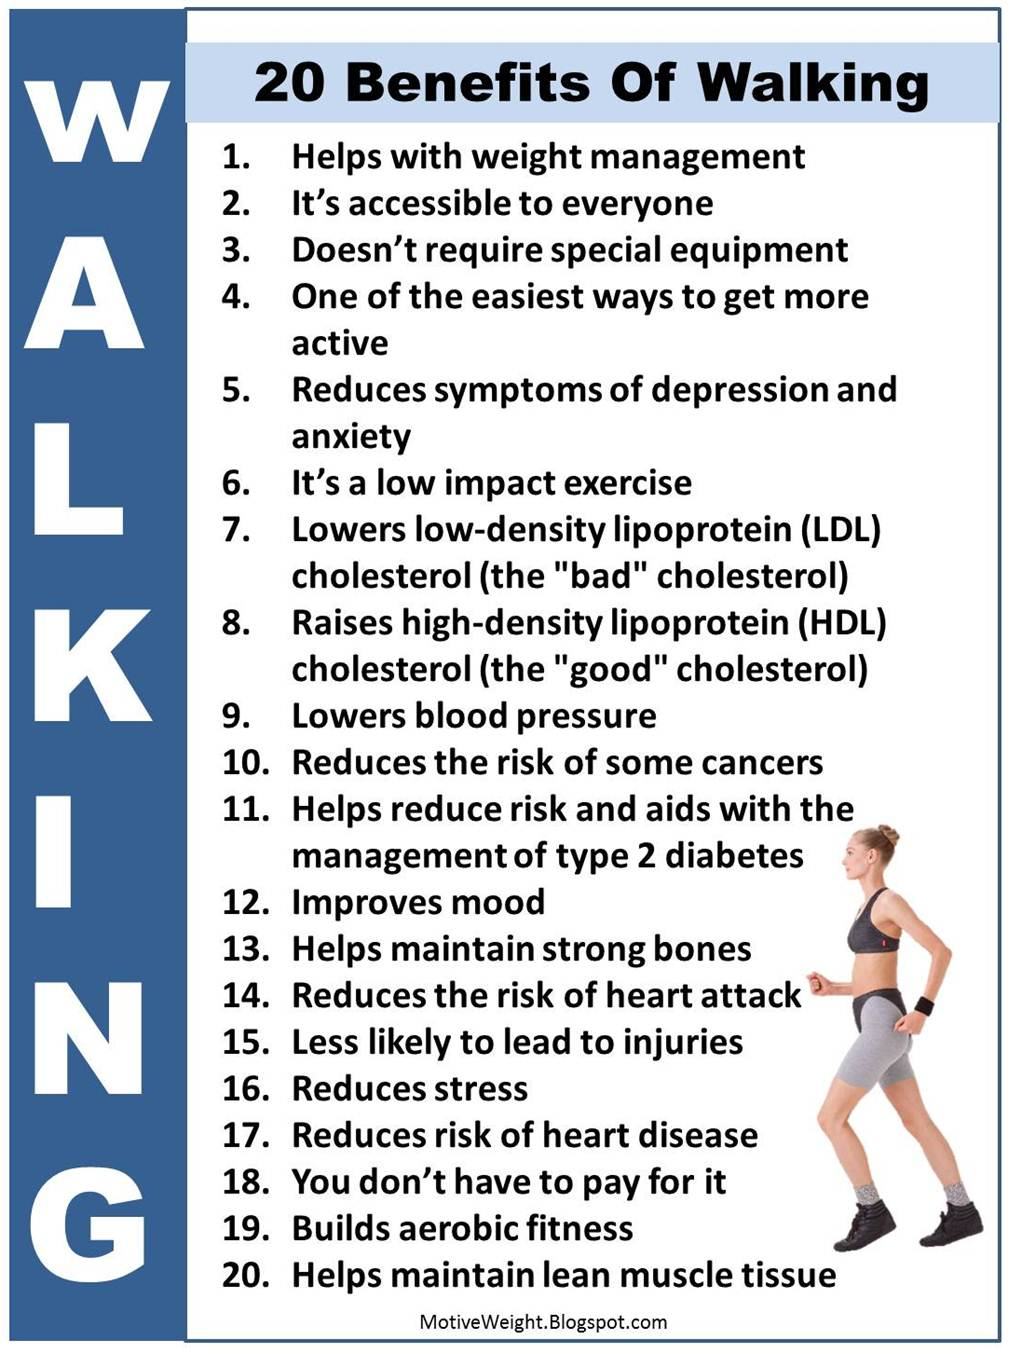 MotiveWeight: 20 Benefits Of Walking For Exercise